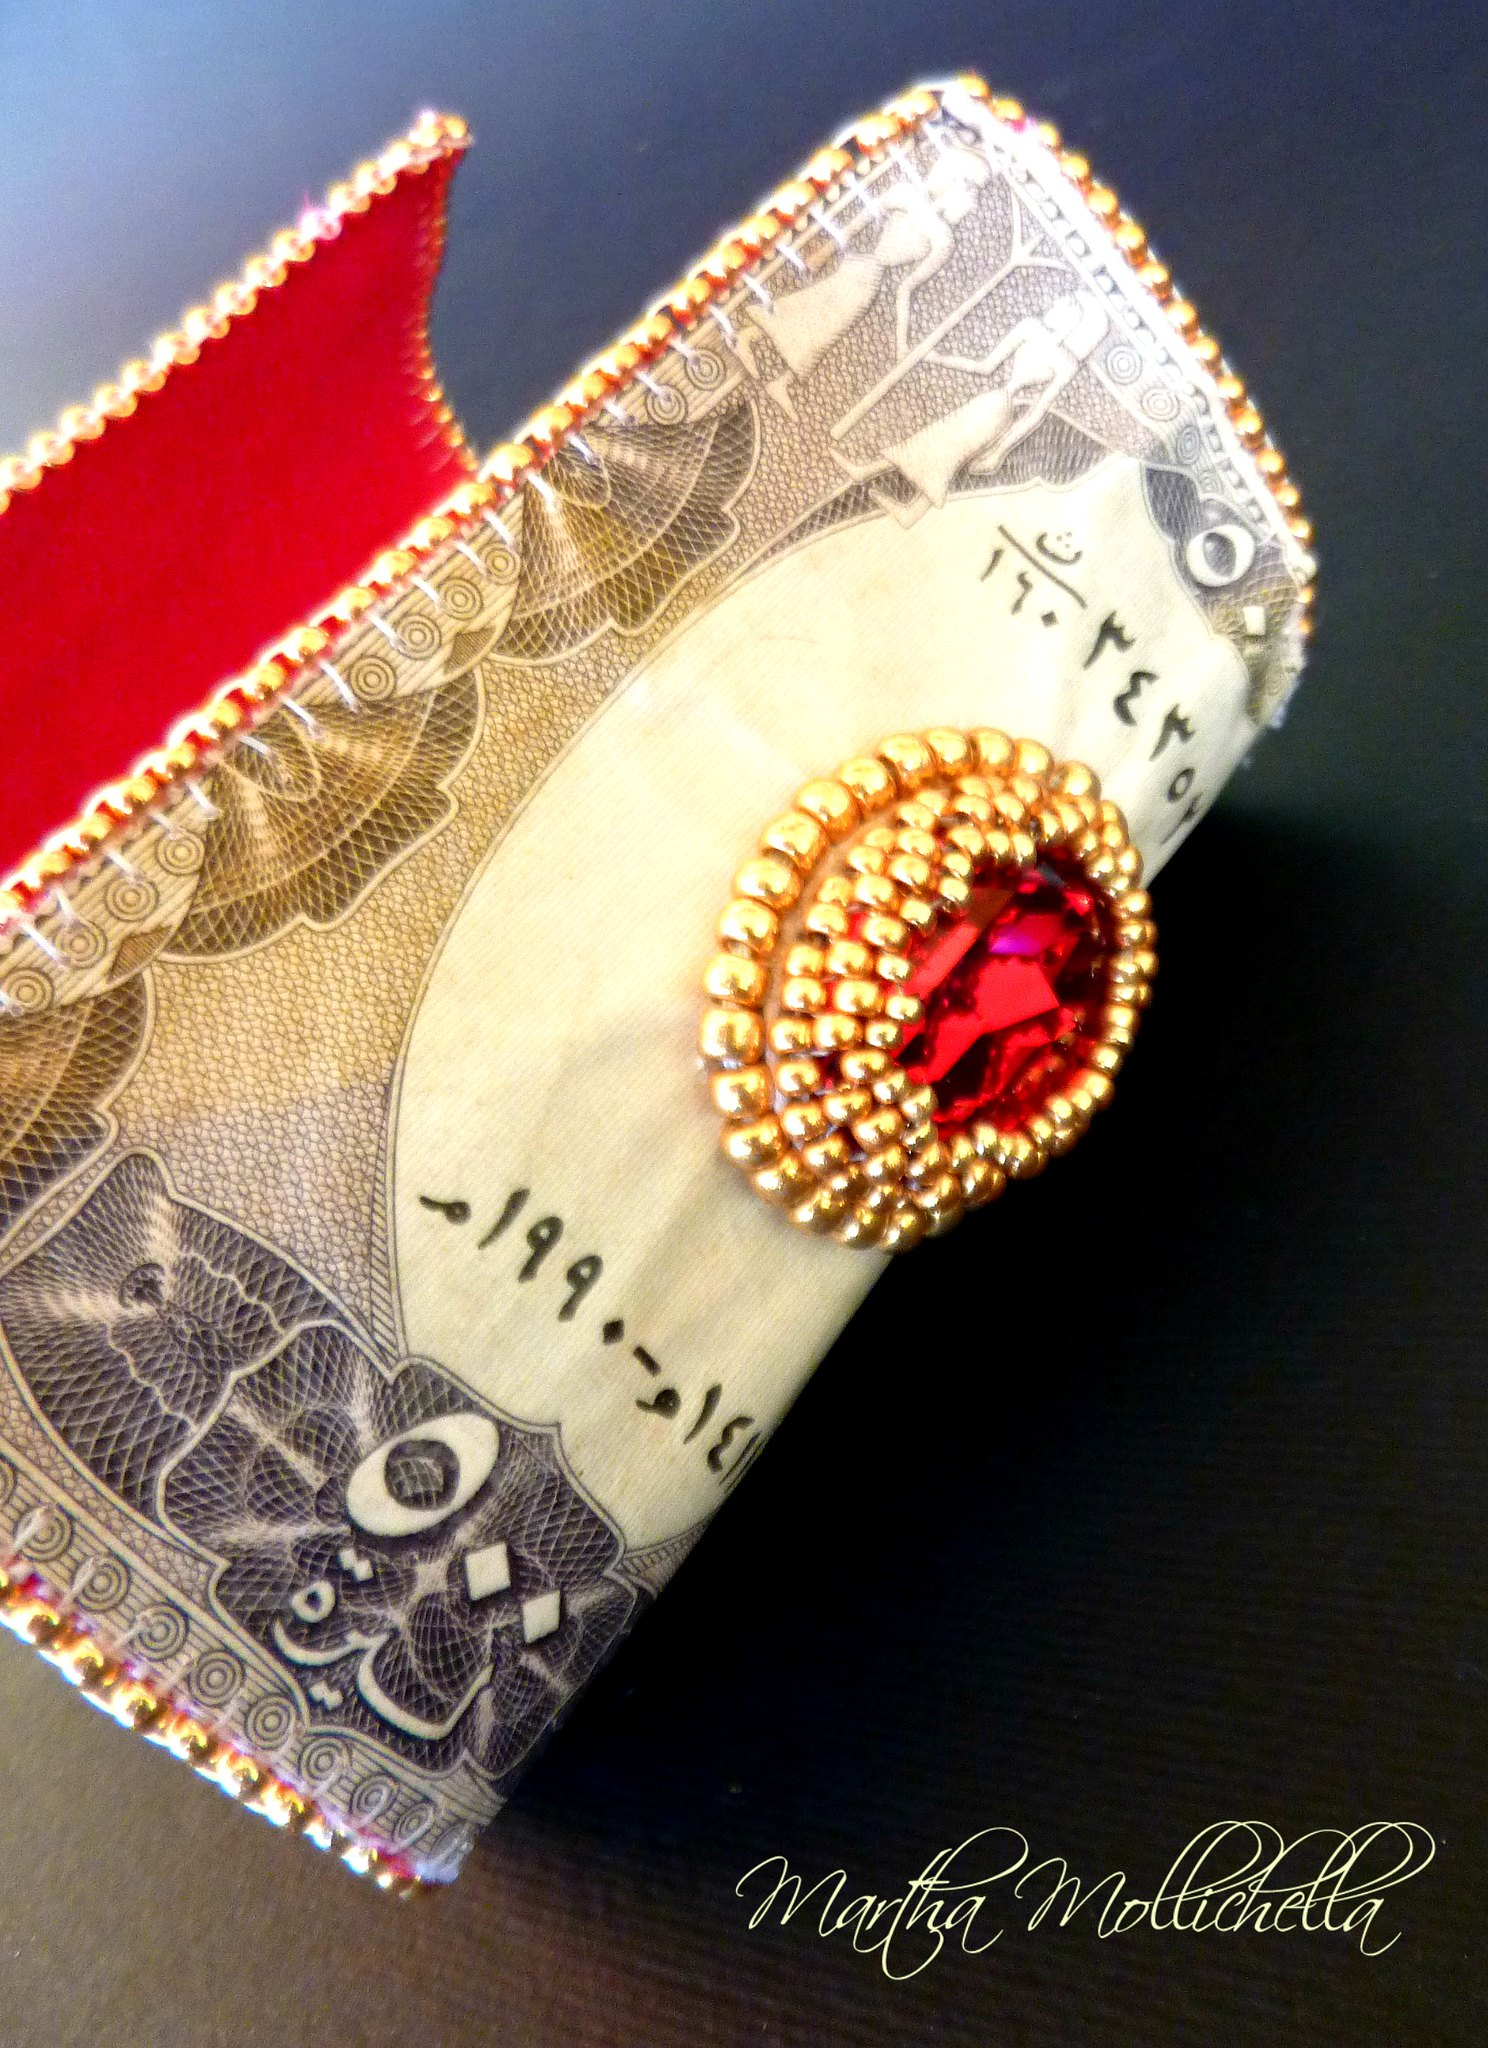 numismatic jewels Syria banknotes embroidered Numismatic Jewels by Martha Mollichella special money jewelry coins and banknotes handmade in Italy